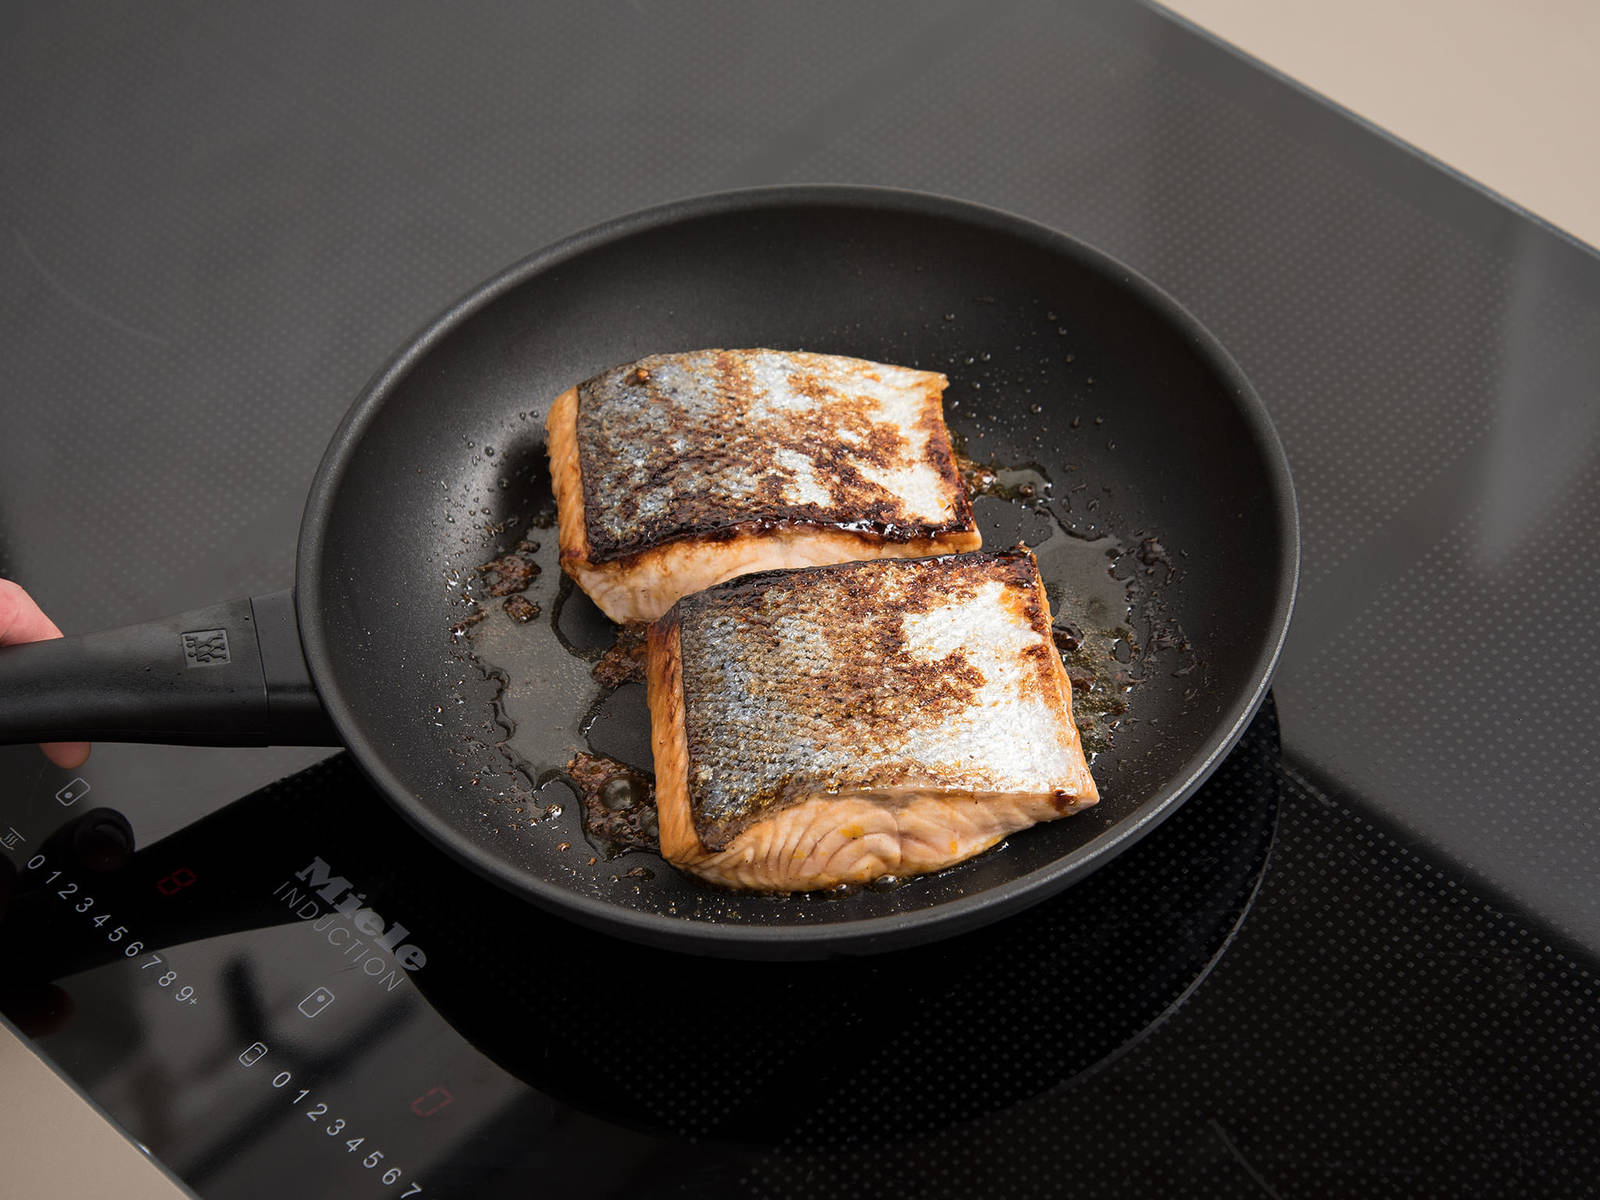 Heat the rest of the olive oil in a frying pan over medium-high heat, and fry the salmon skin side down for approx. 2 min. Flip the fillets over and brush with remaining syrup. Cook for another 3 - 4 min. or until cooked to desired level of doneness.